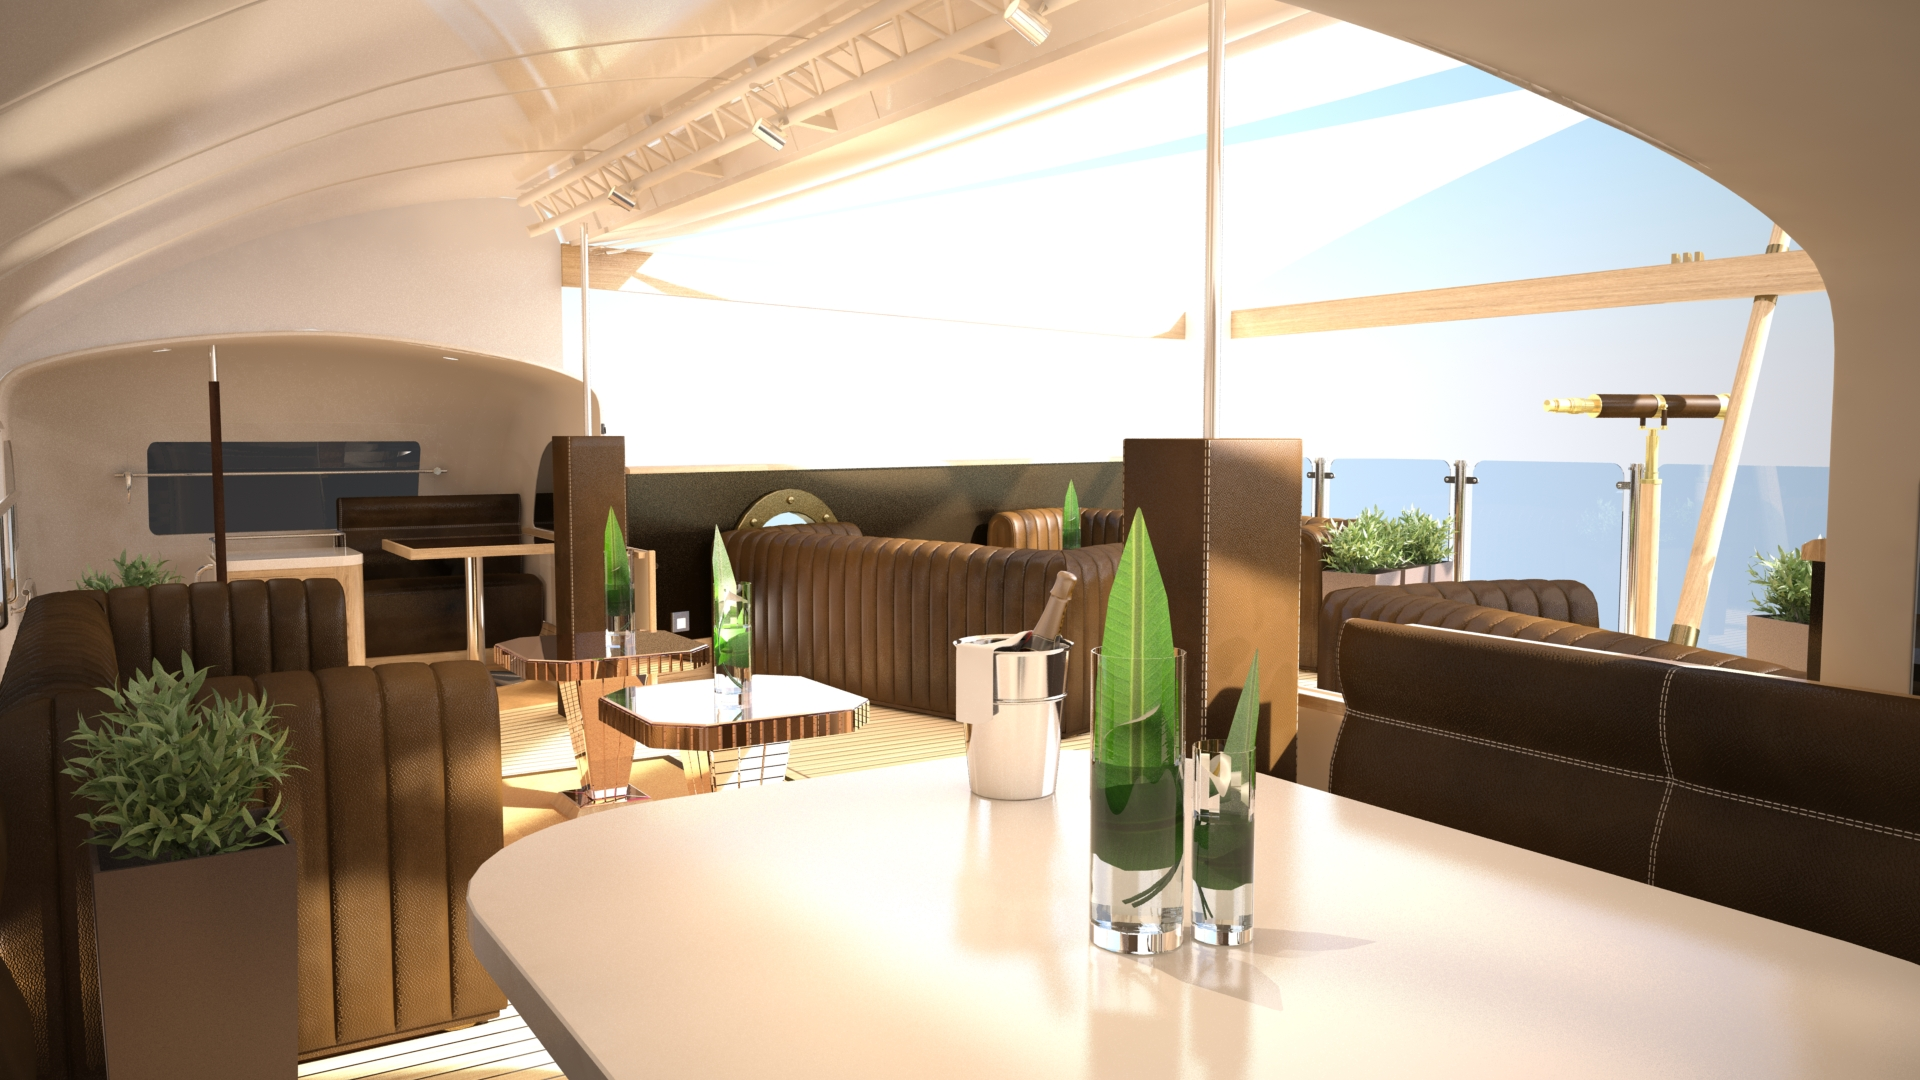 Top Deck From Banquette_01.jpg